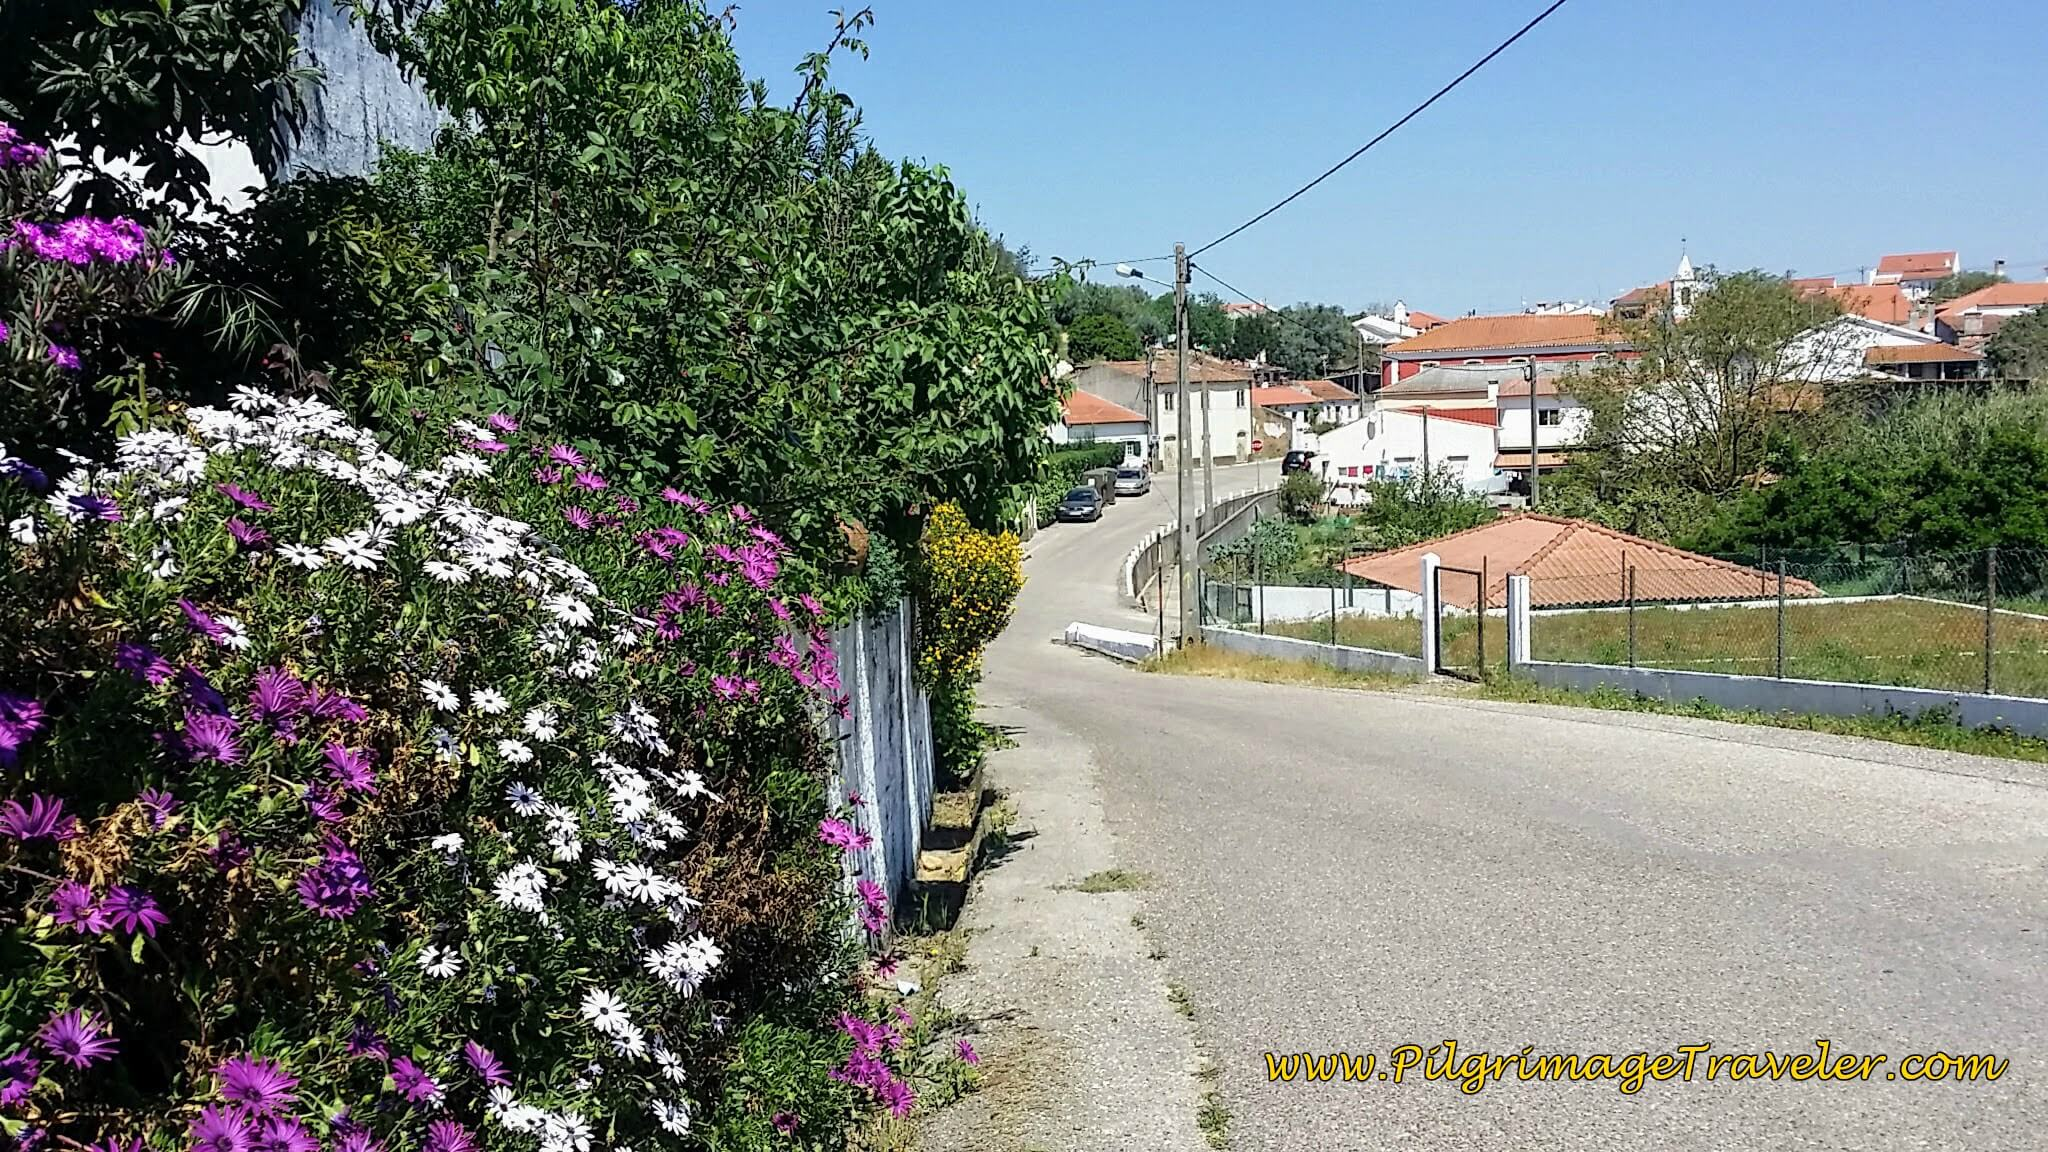 Asters Liven the Way Through Asseiceira